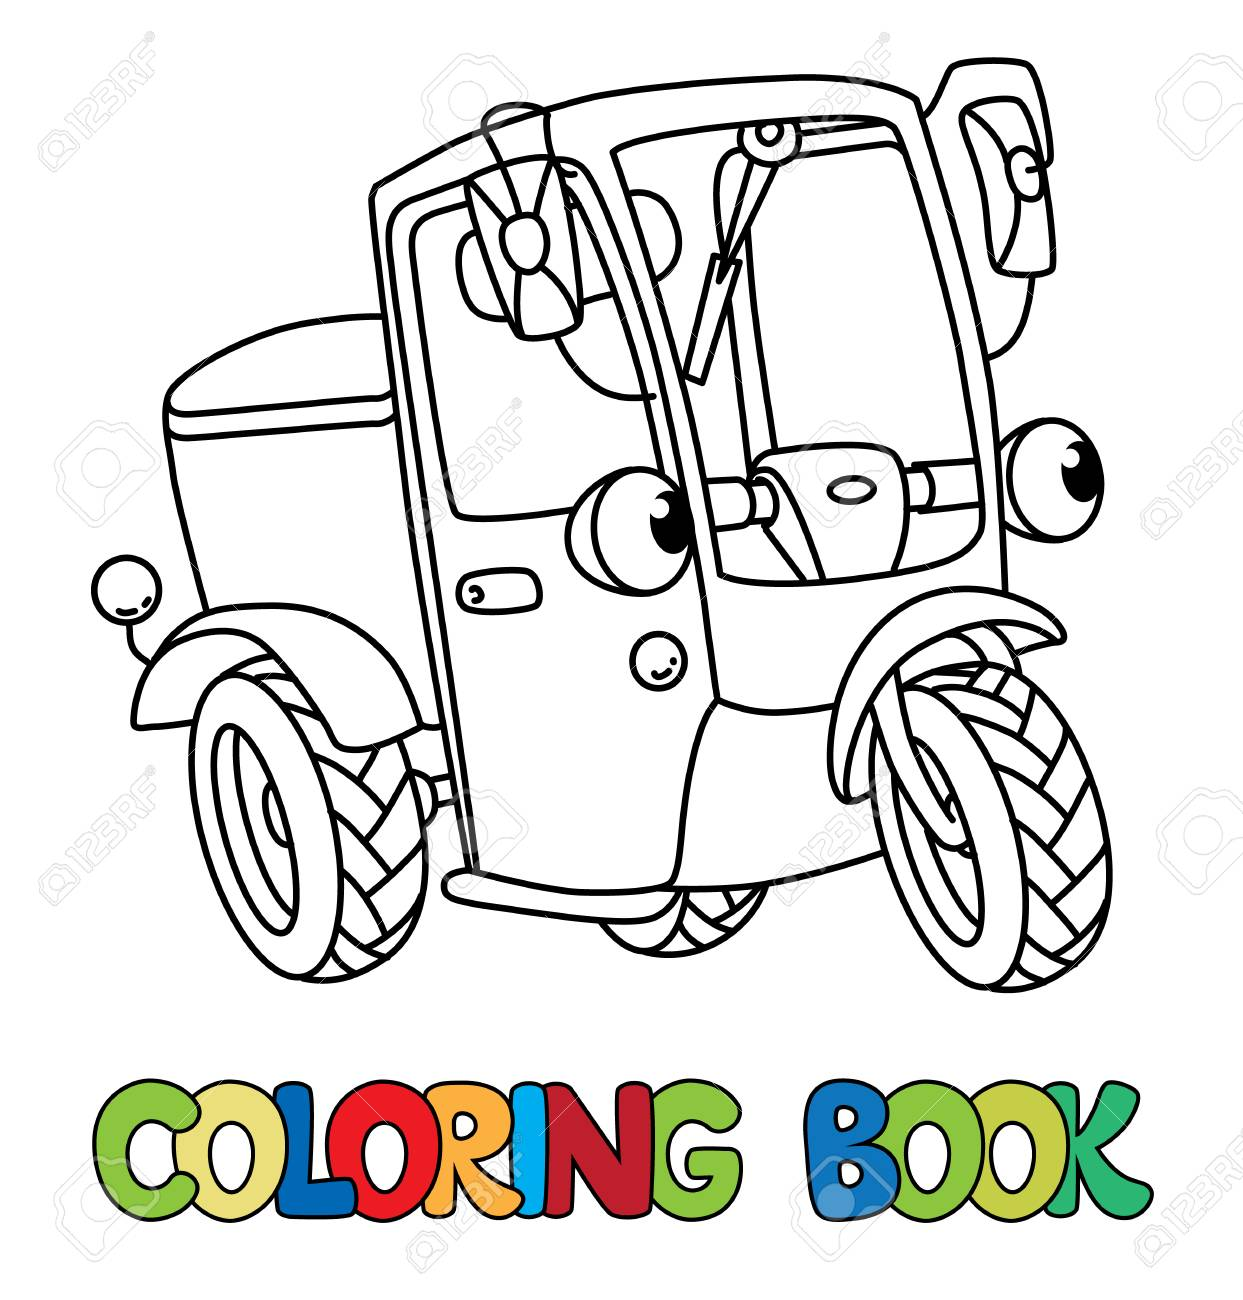 Scooter Or Delivery Car Coloring Book For Kids Small Funny Vector Cute Vehicle With Eyes